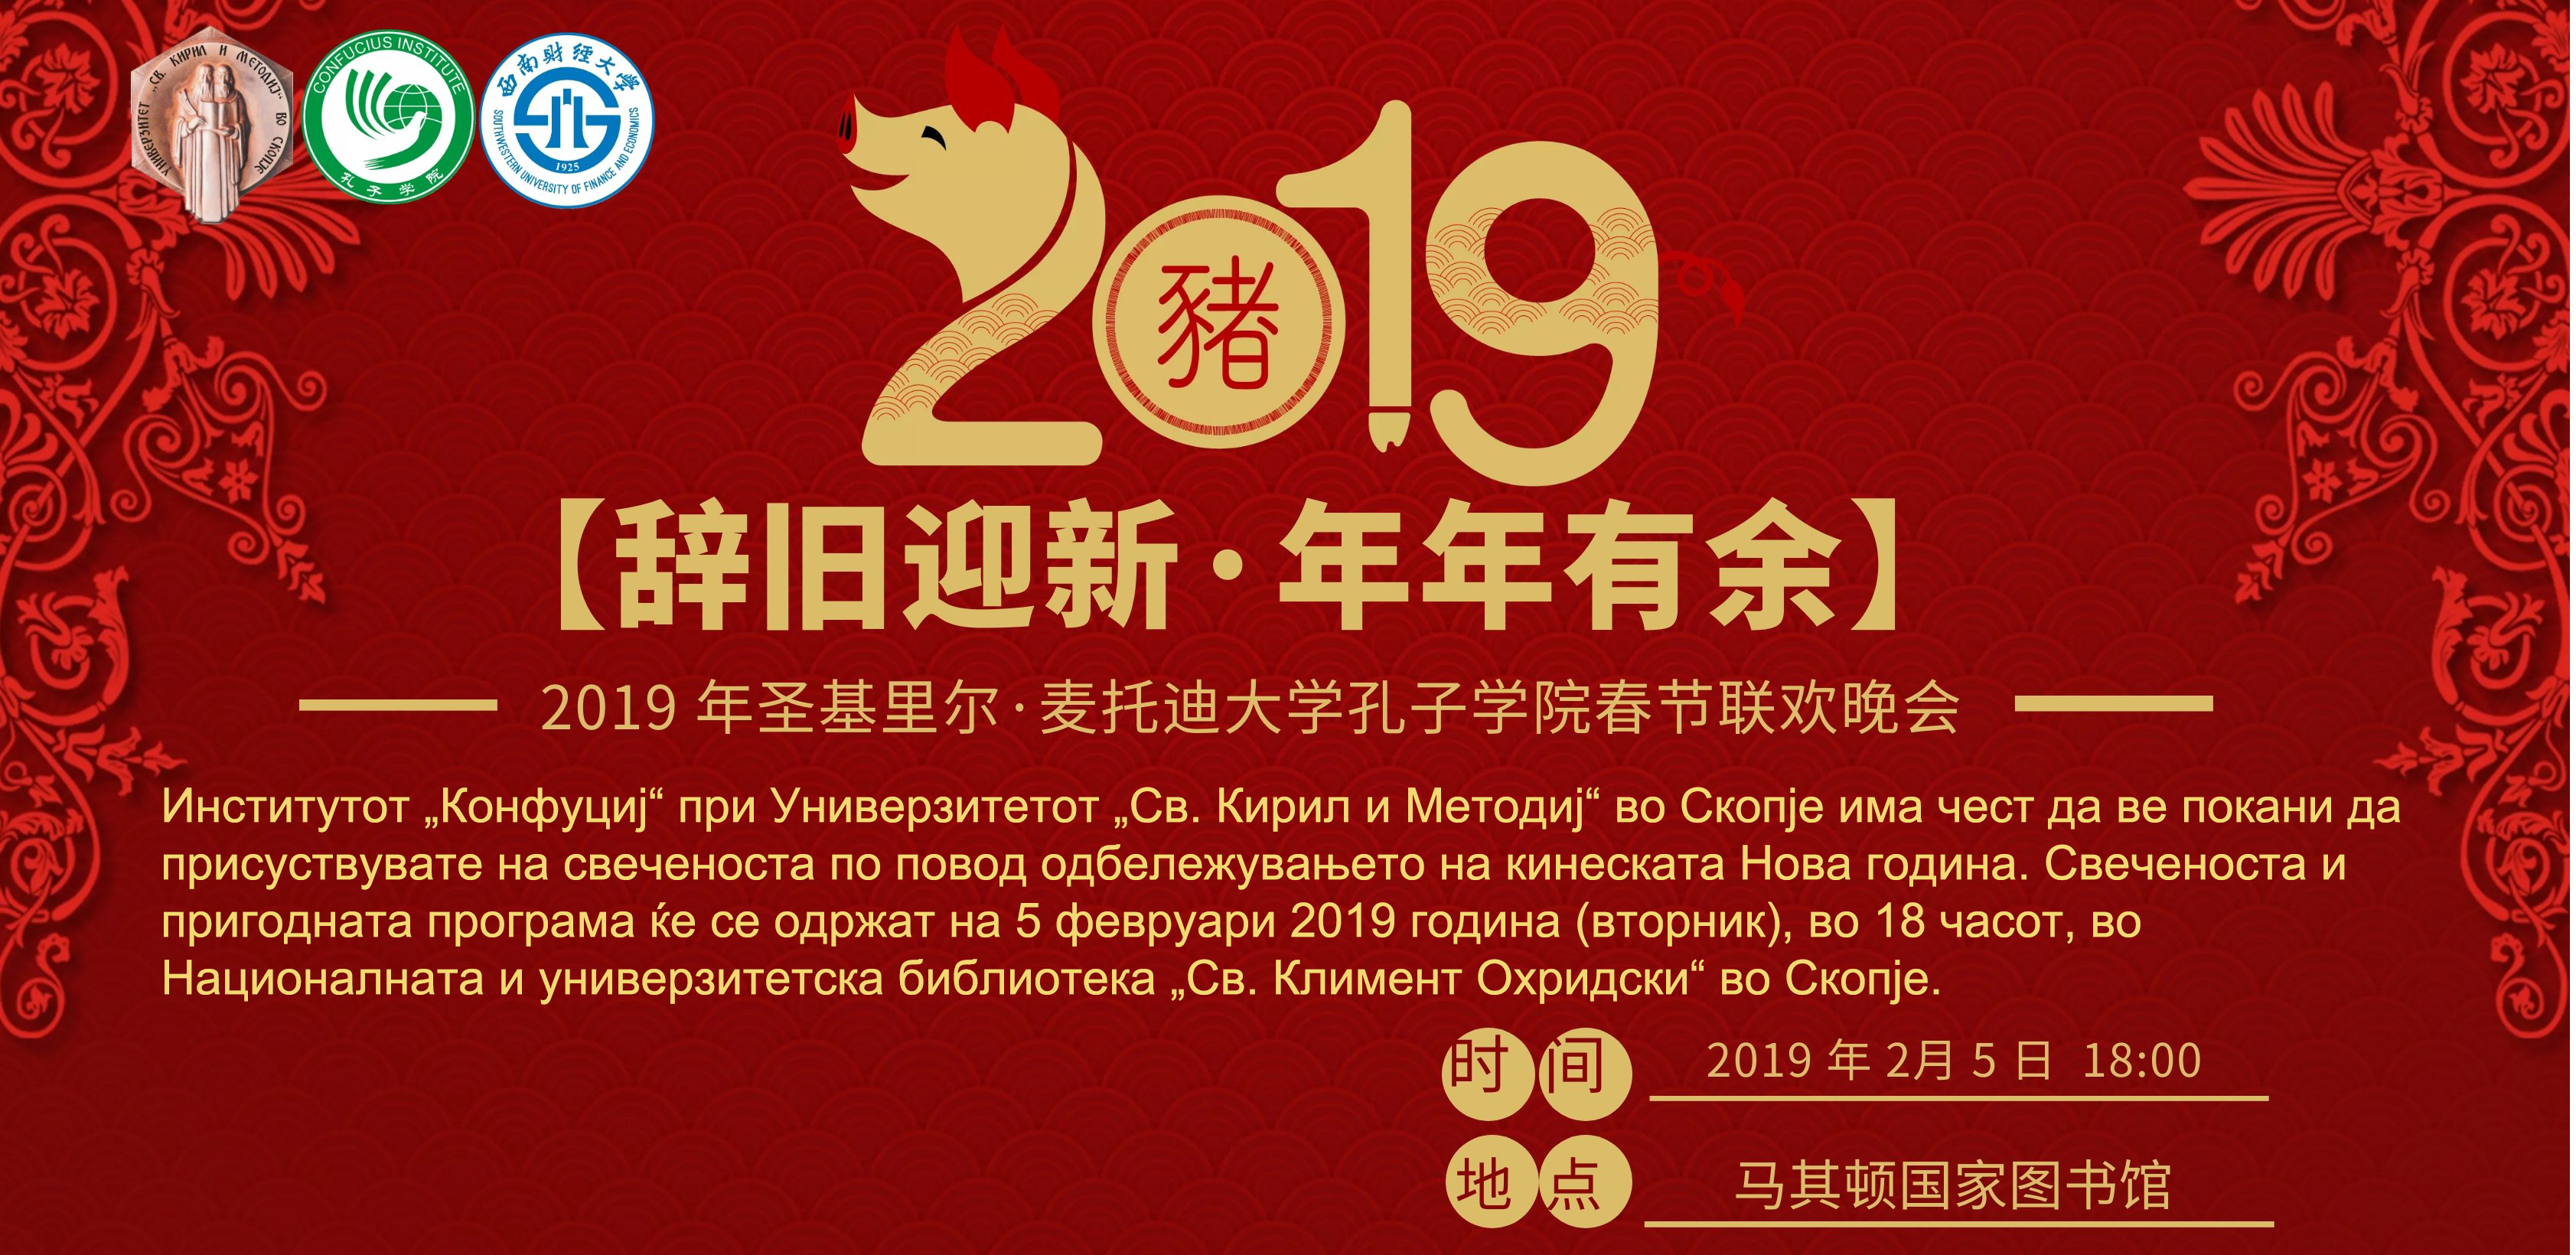 Bid the last year farewelland welcome to a new year in singing and dancing ——2019 Spring Festival Gala of Confucius Institute at Ss. Cyril and Methodius University successfully held